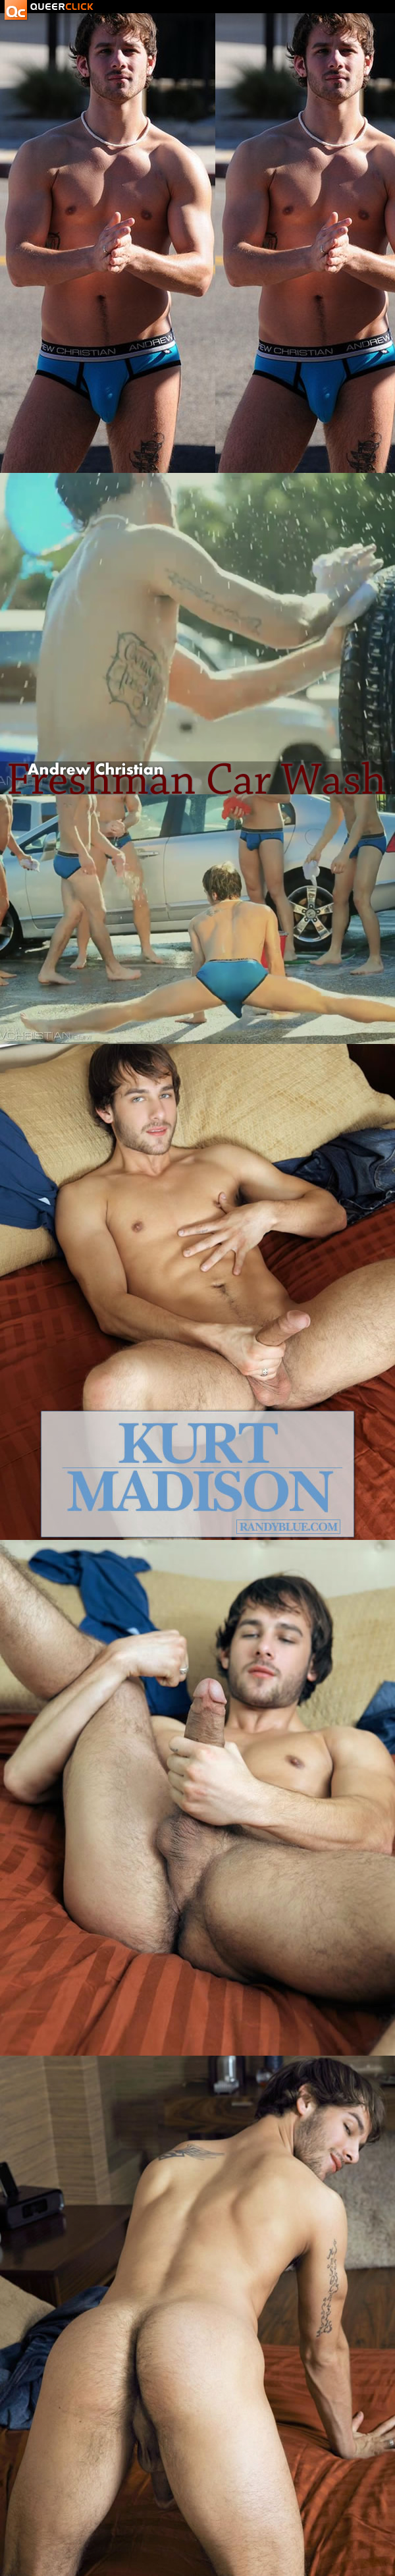 Andrew Christian: Freshman Car Wash Kurt Madison